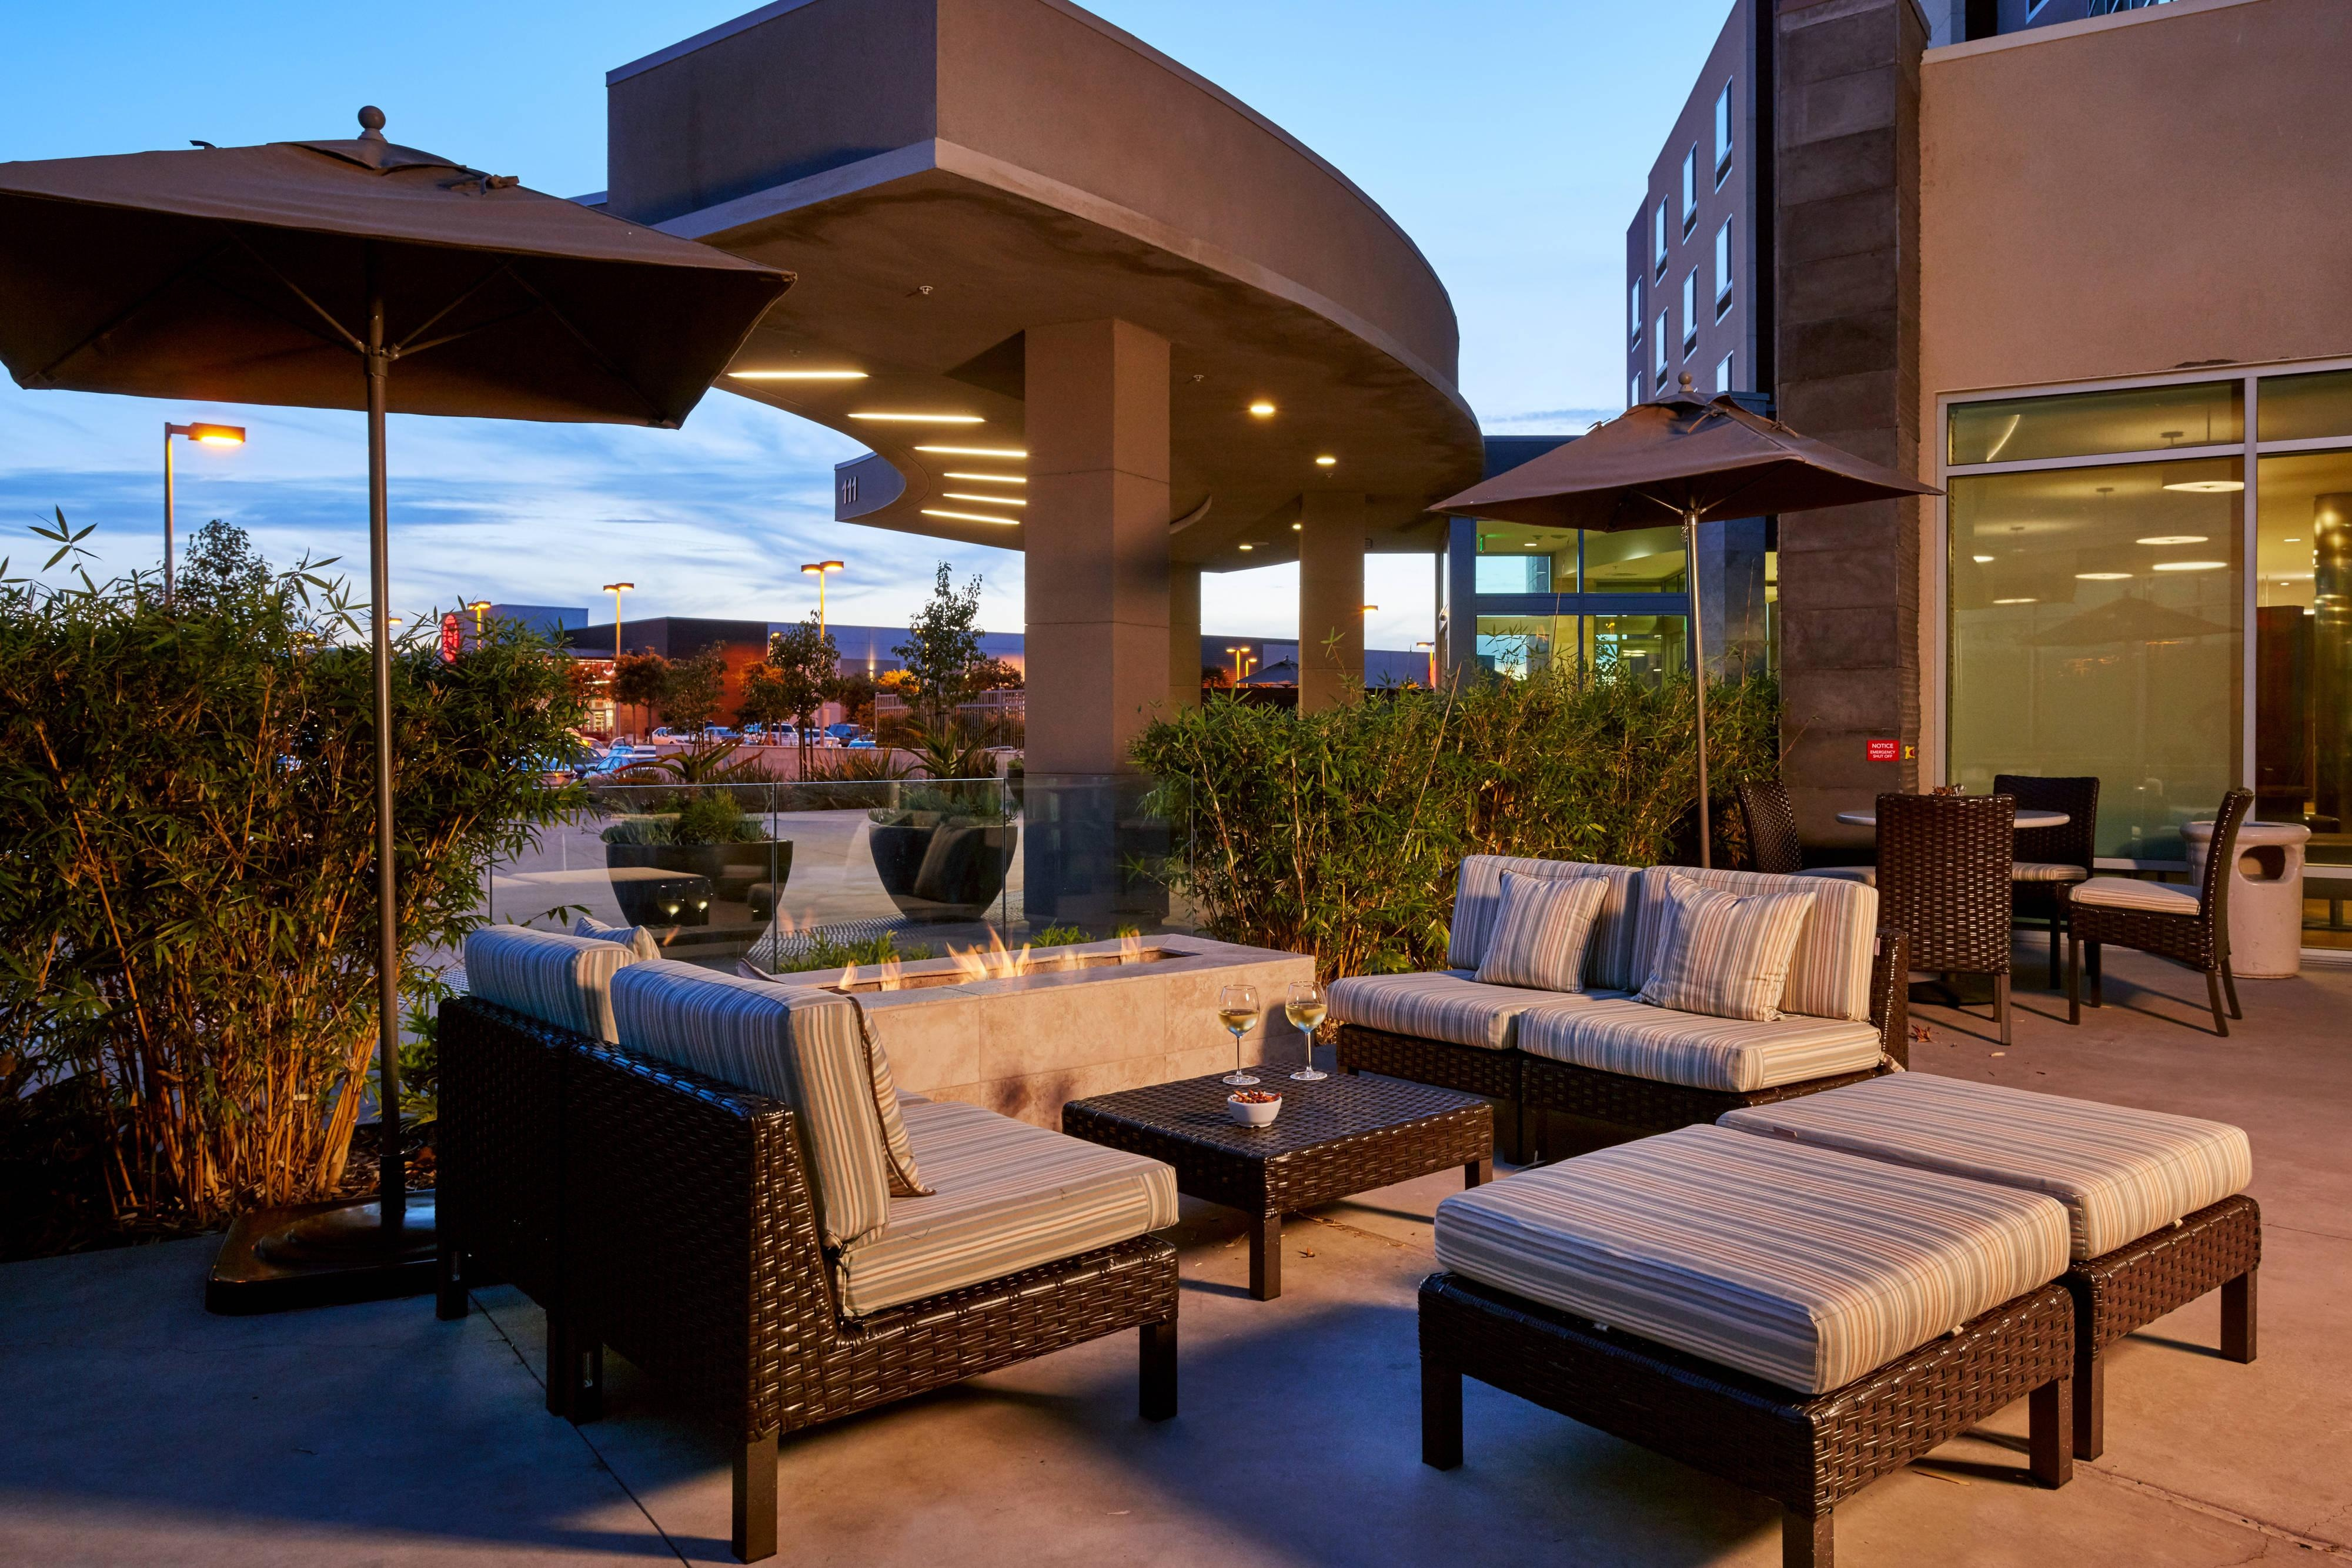 Courtyard by Marriott San Jose North/Silicon Valley Firepit